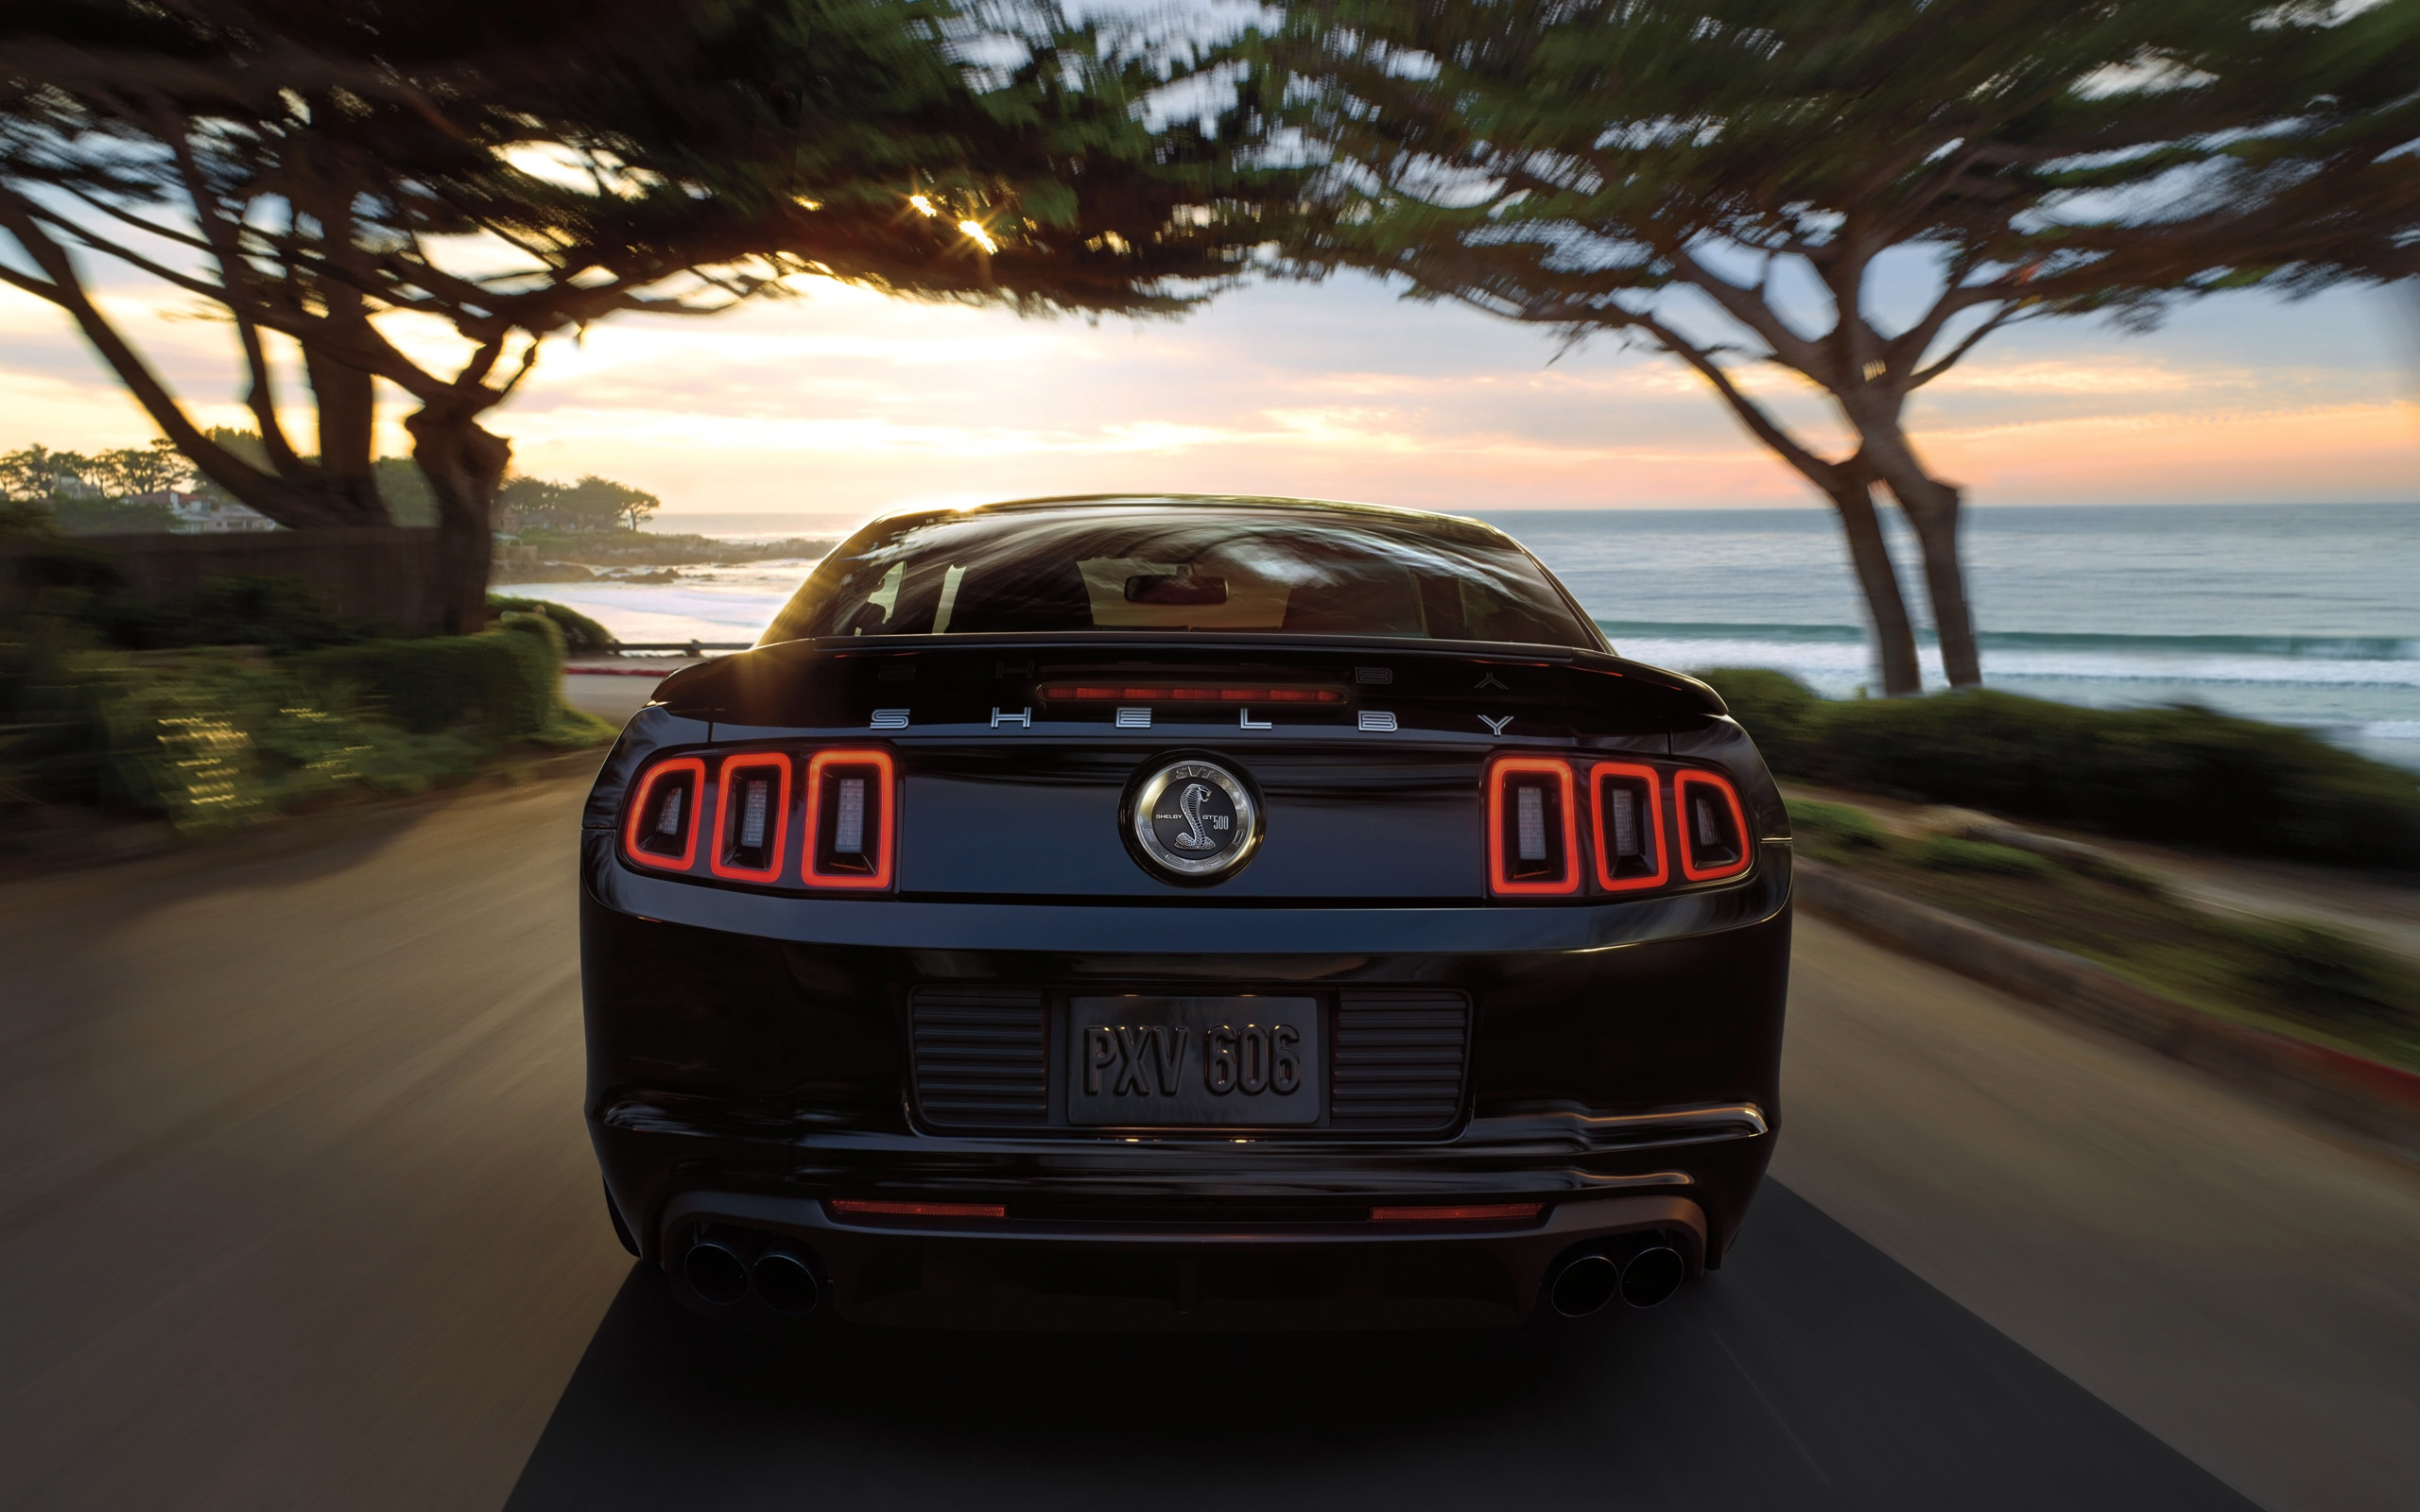 2014 ford mustang muscle g wallpaper 2560x1600 149371 wallpaperup - Mustang 2014 Black Wallpaper